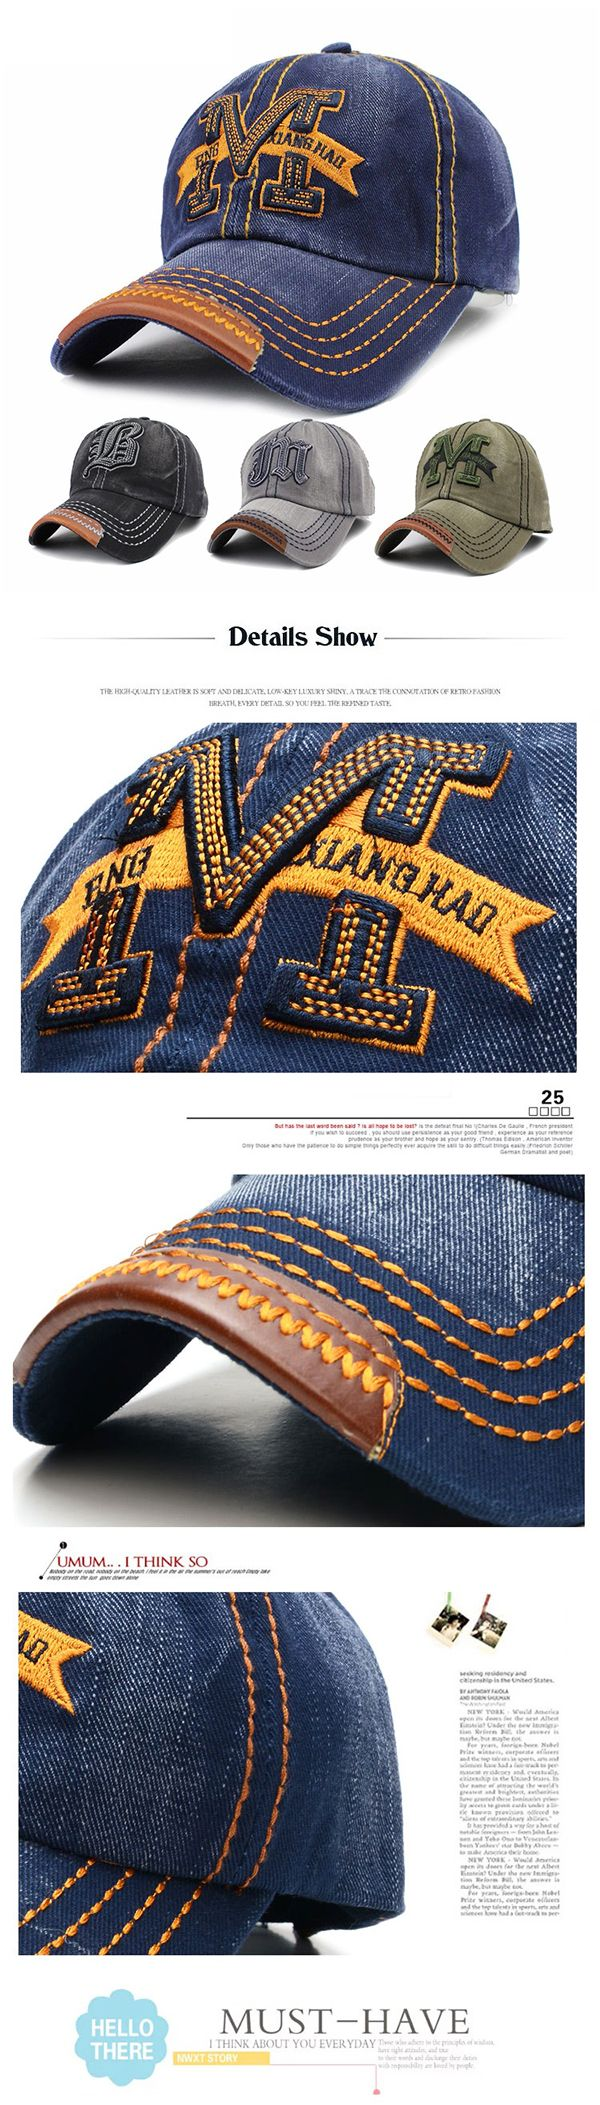 US$7.60 (48% OFF) Men Women Embroidery M Cowboy Sun Hat Adjustable Snapback Baseball Cap